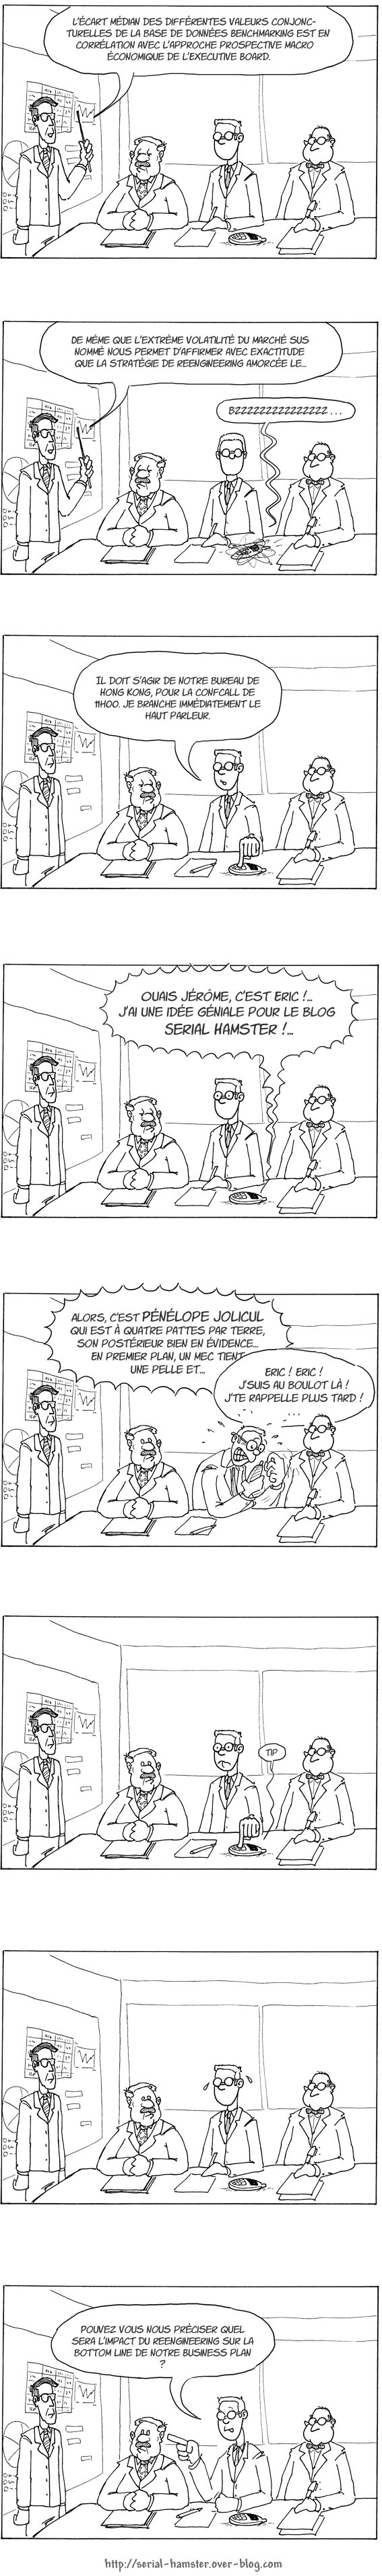 2010-02-25-The-office